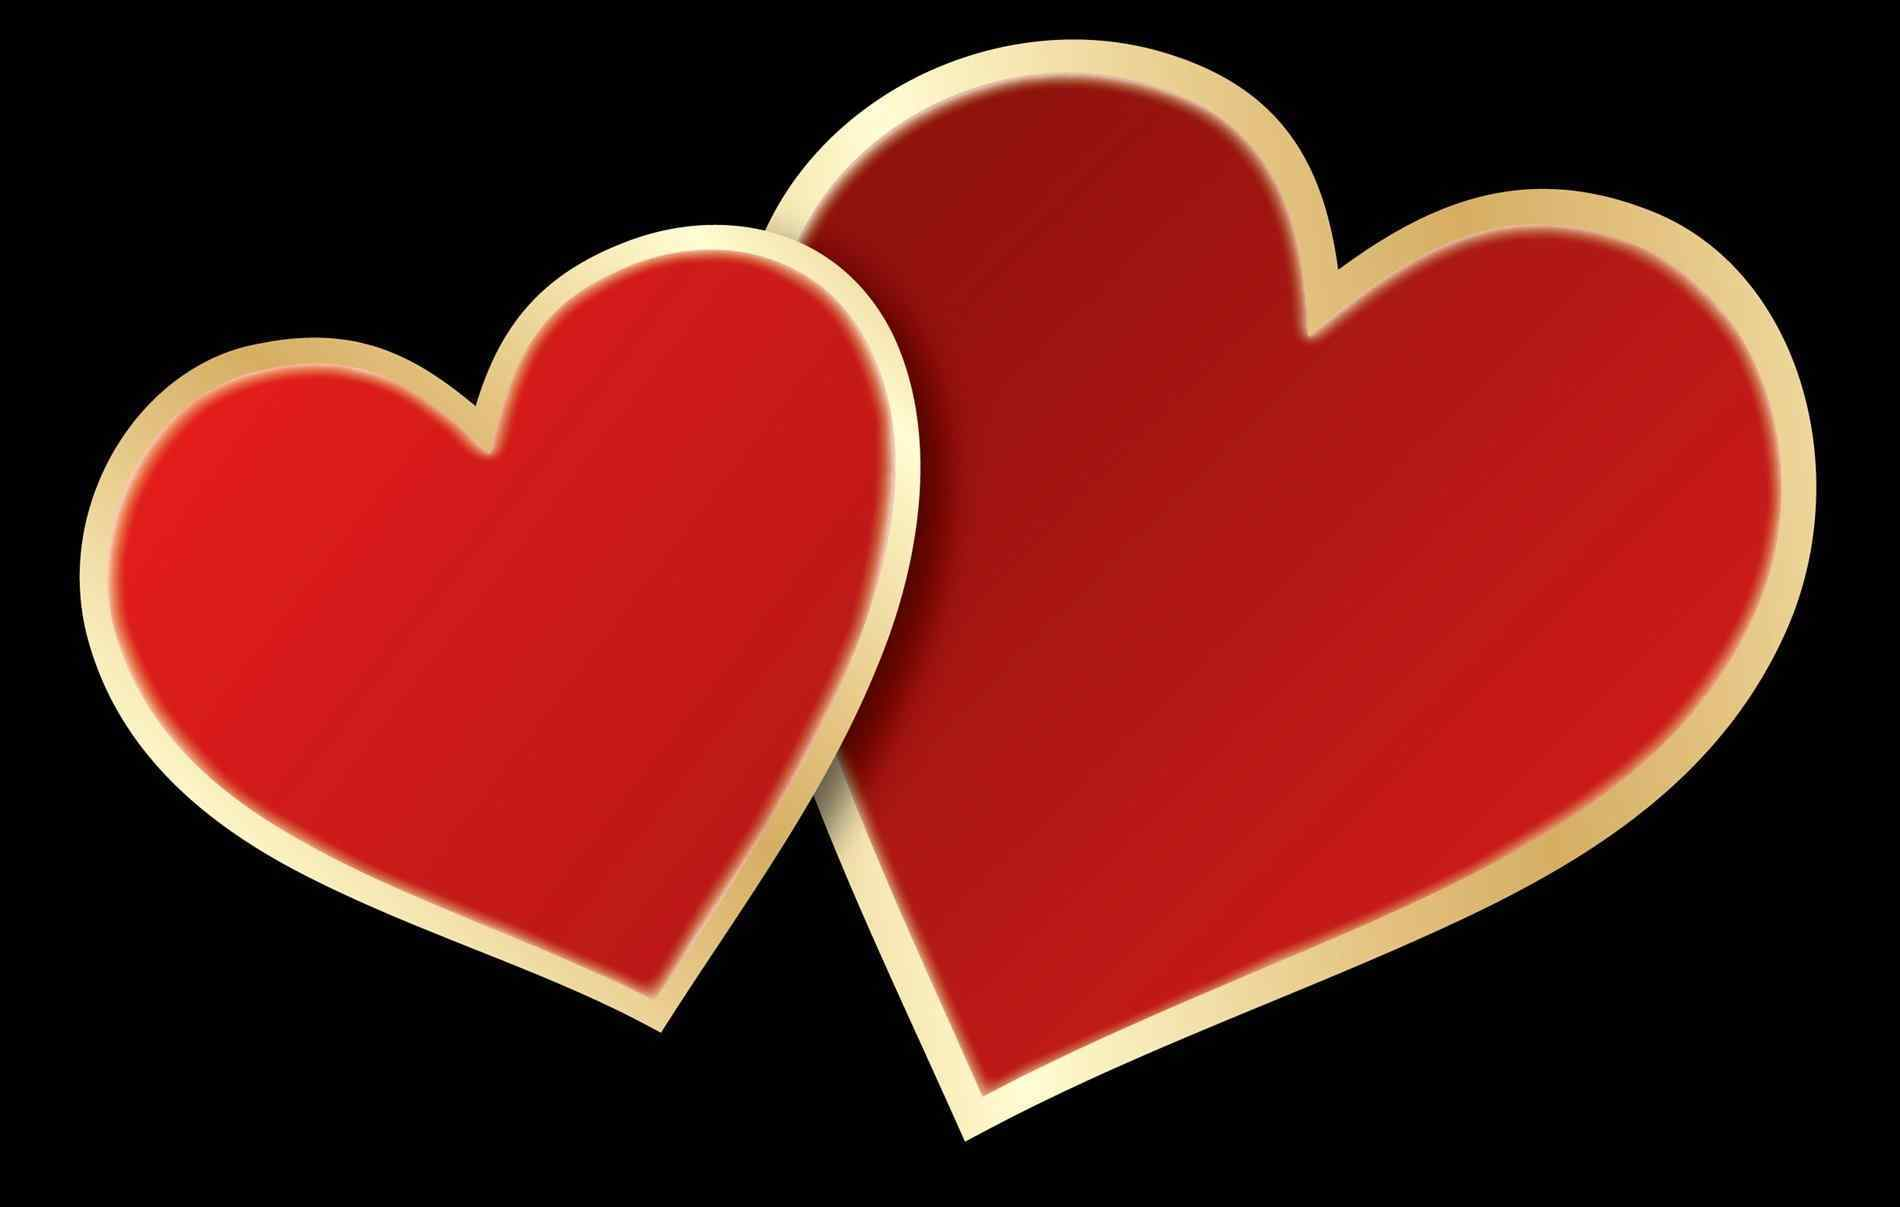 1900x1207 Valentine Heart Pictures For Day Free Download Clip Art